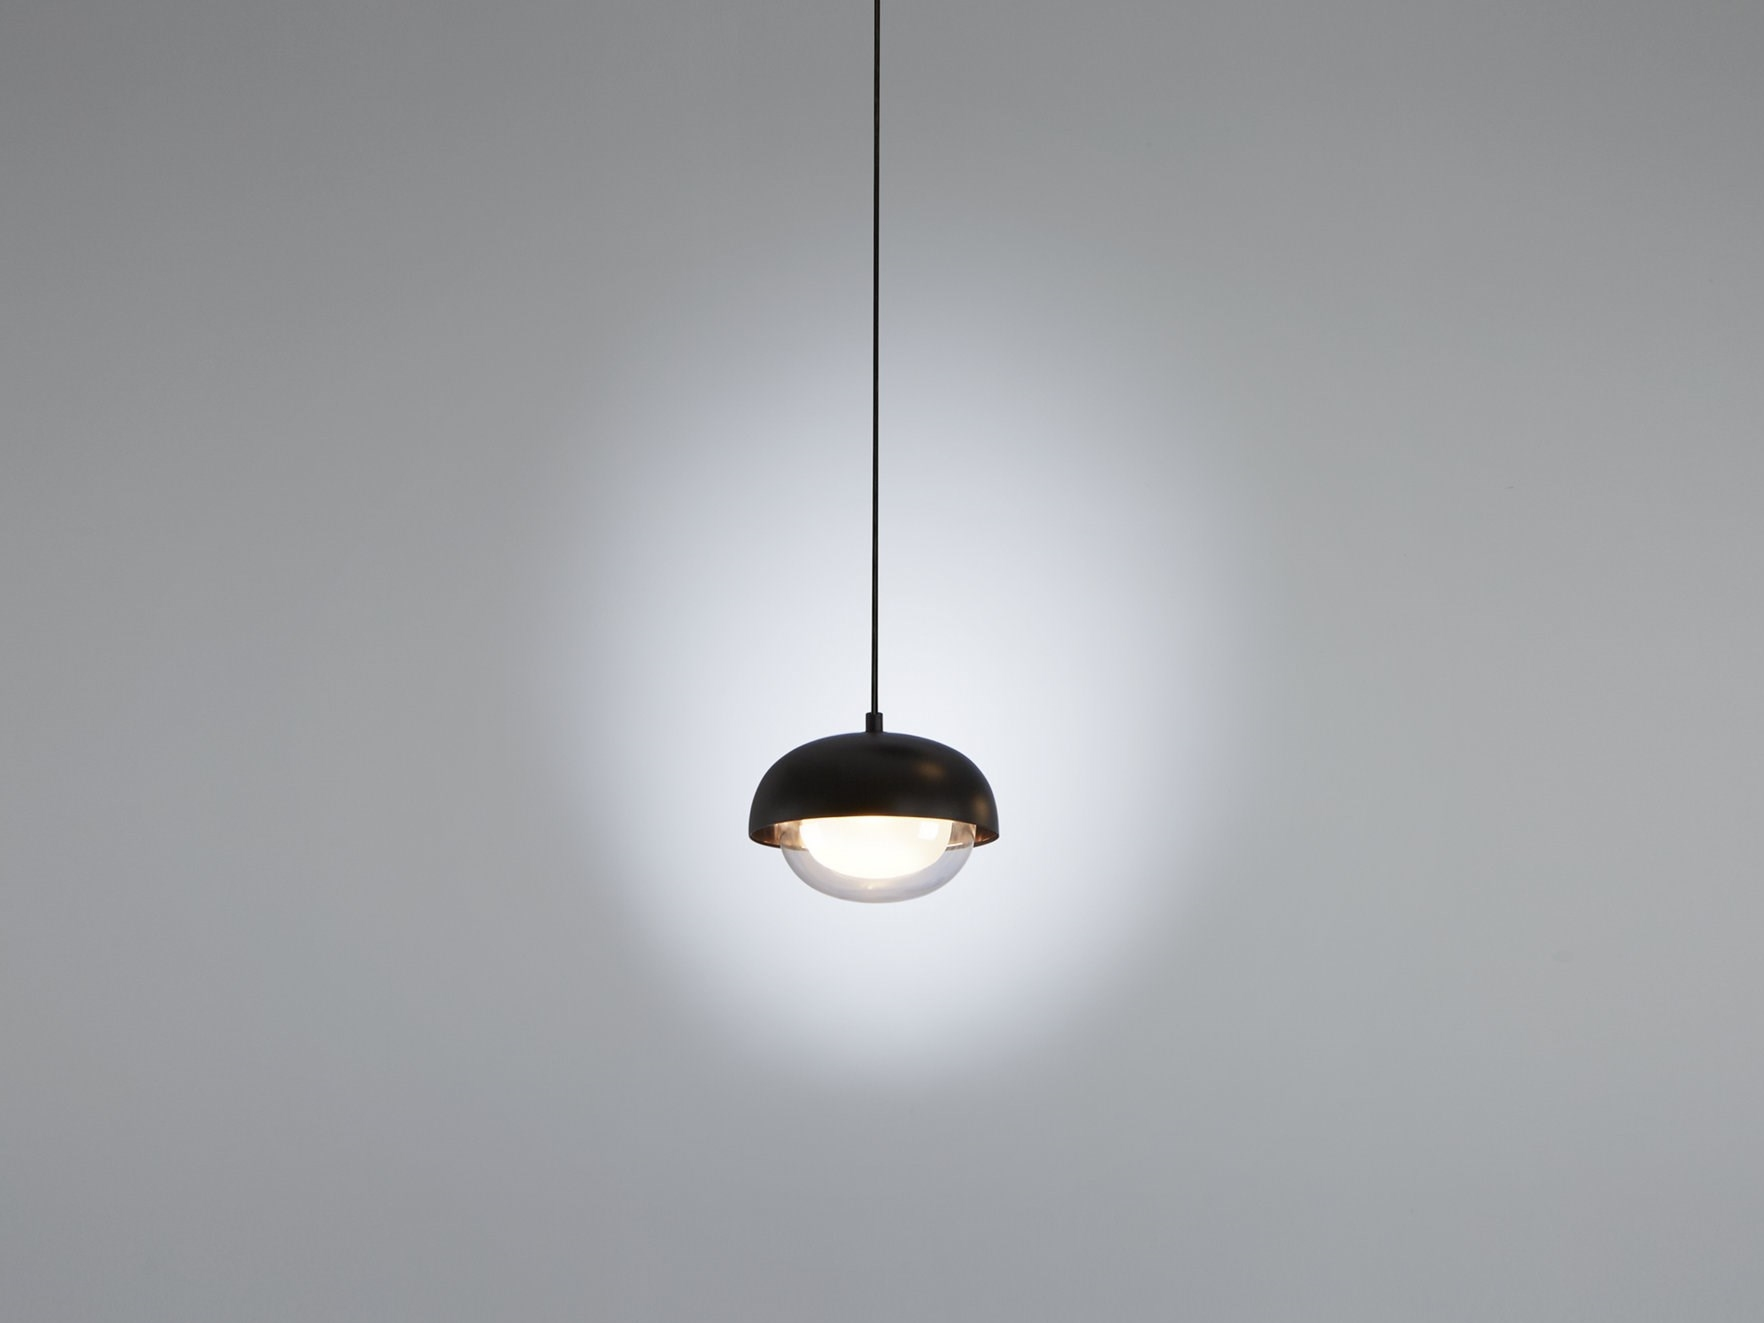 Lampara Directa Muse Direct Light Pendant Lamp Muse Collection By Tooy